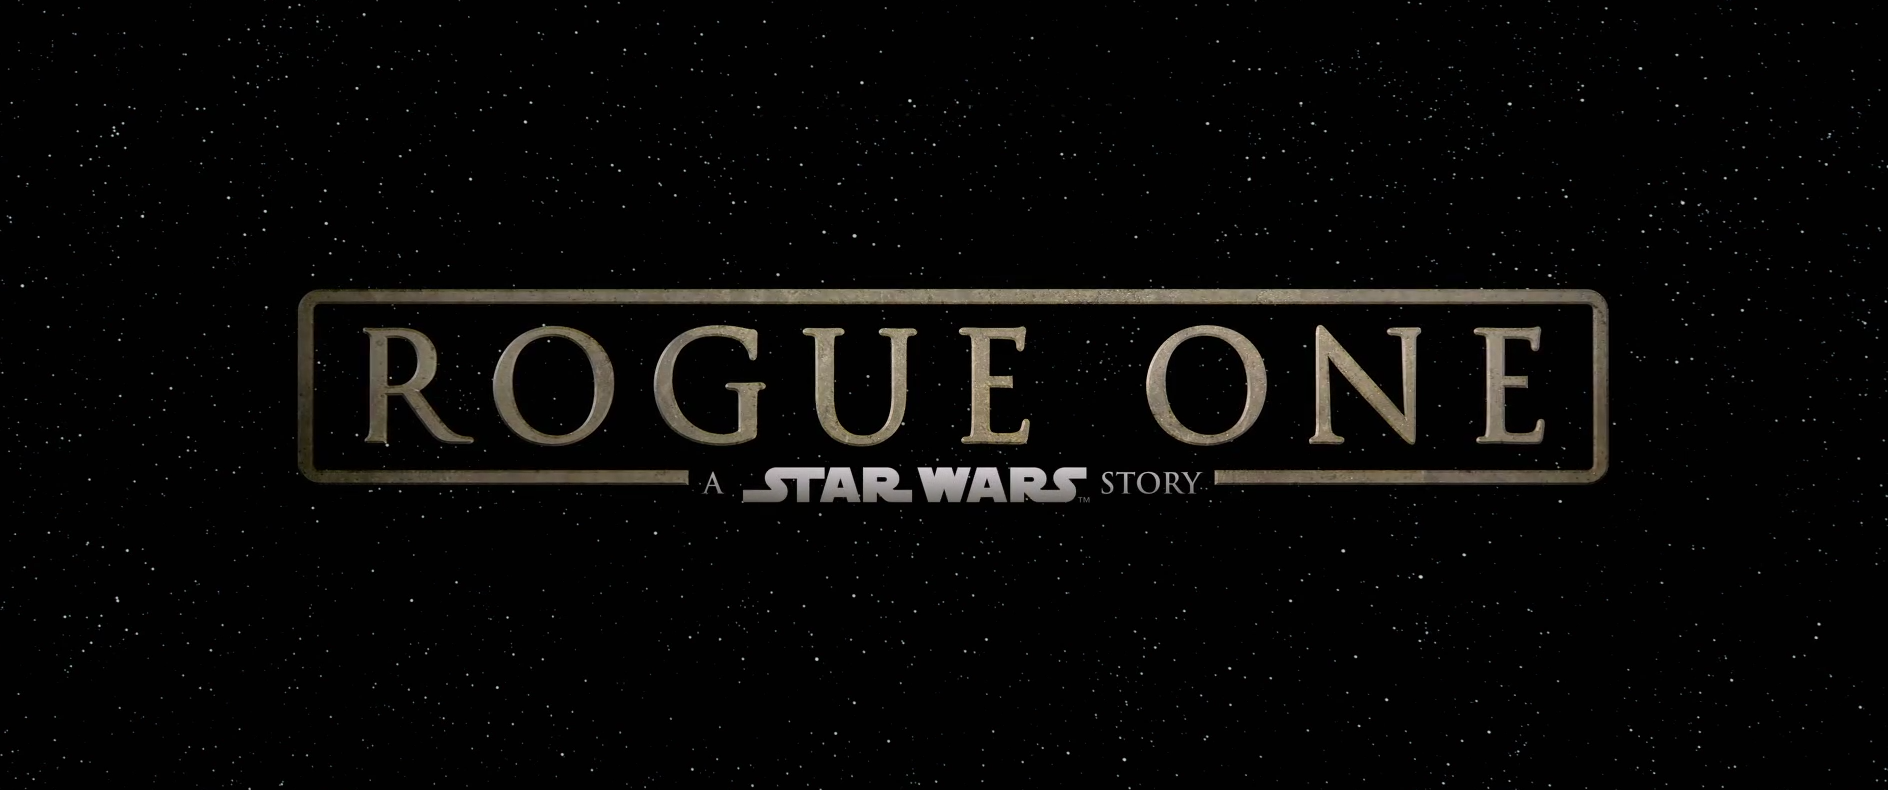 Mira el primer teaser de Rogue One: A Star Wars Story